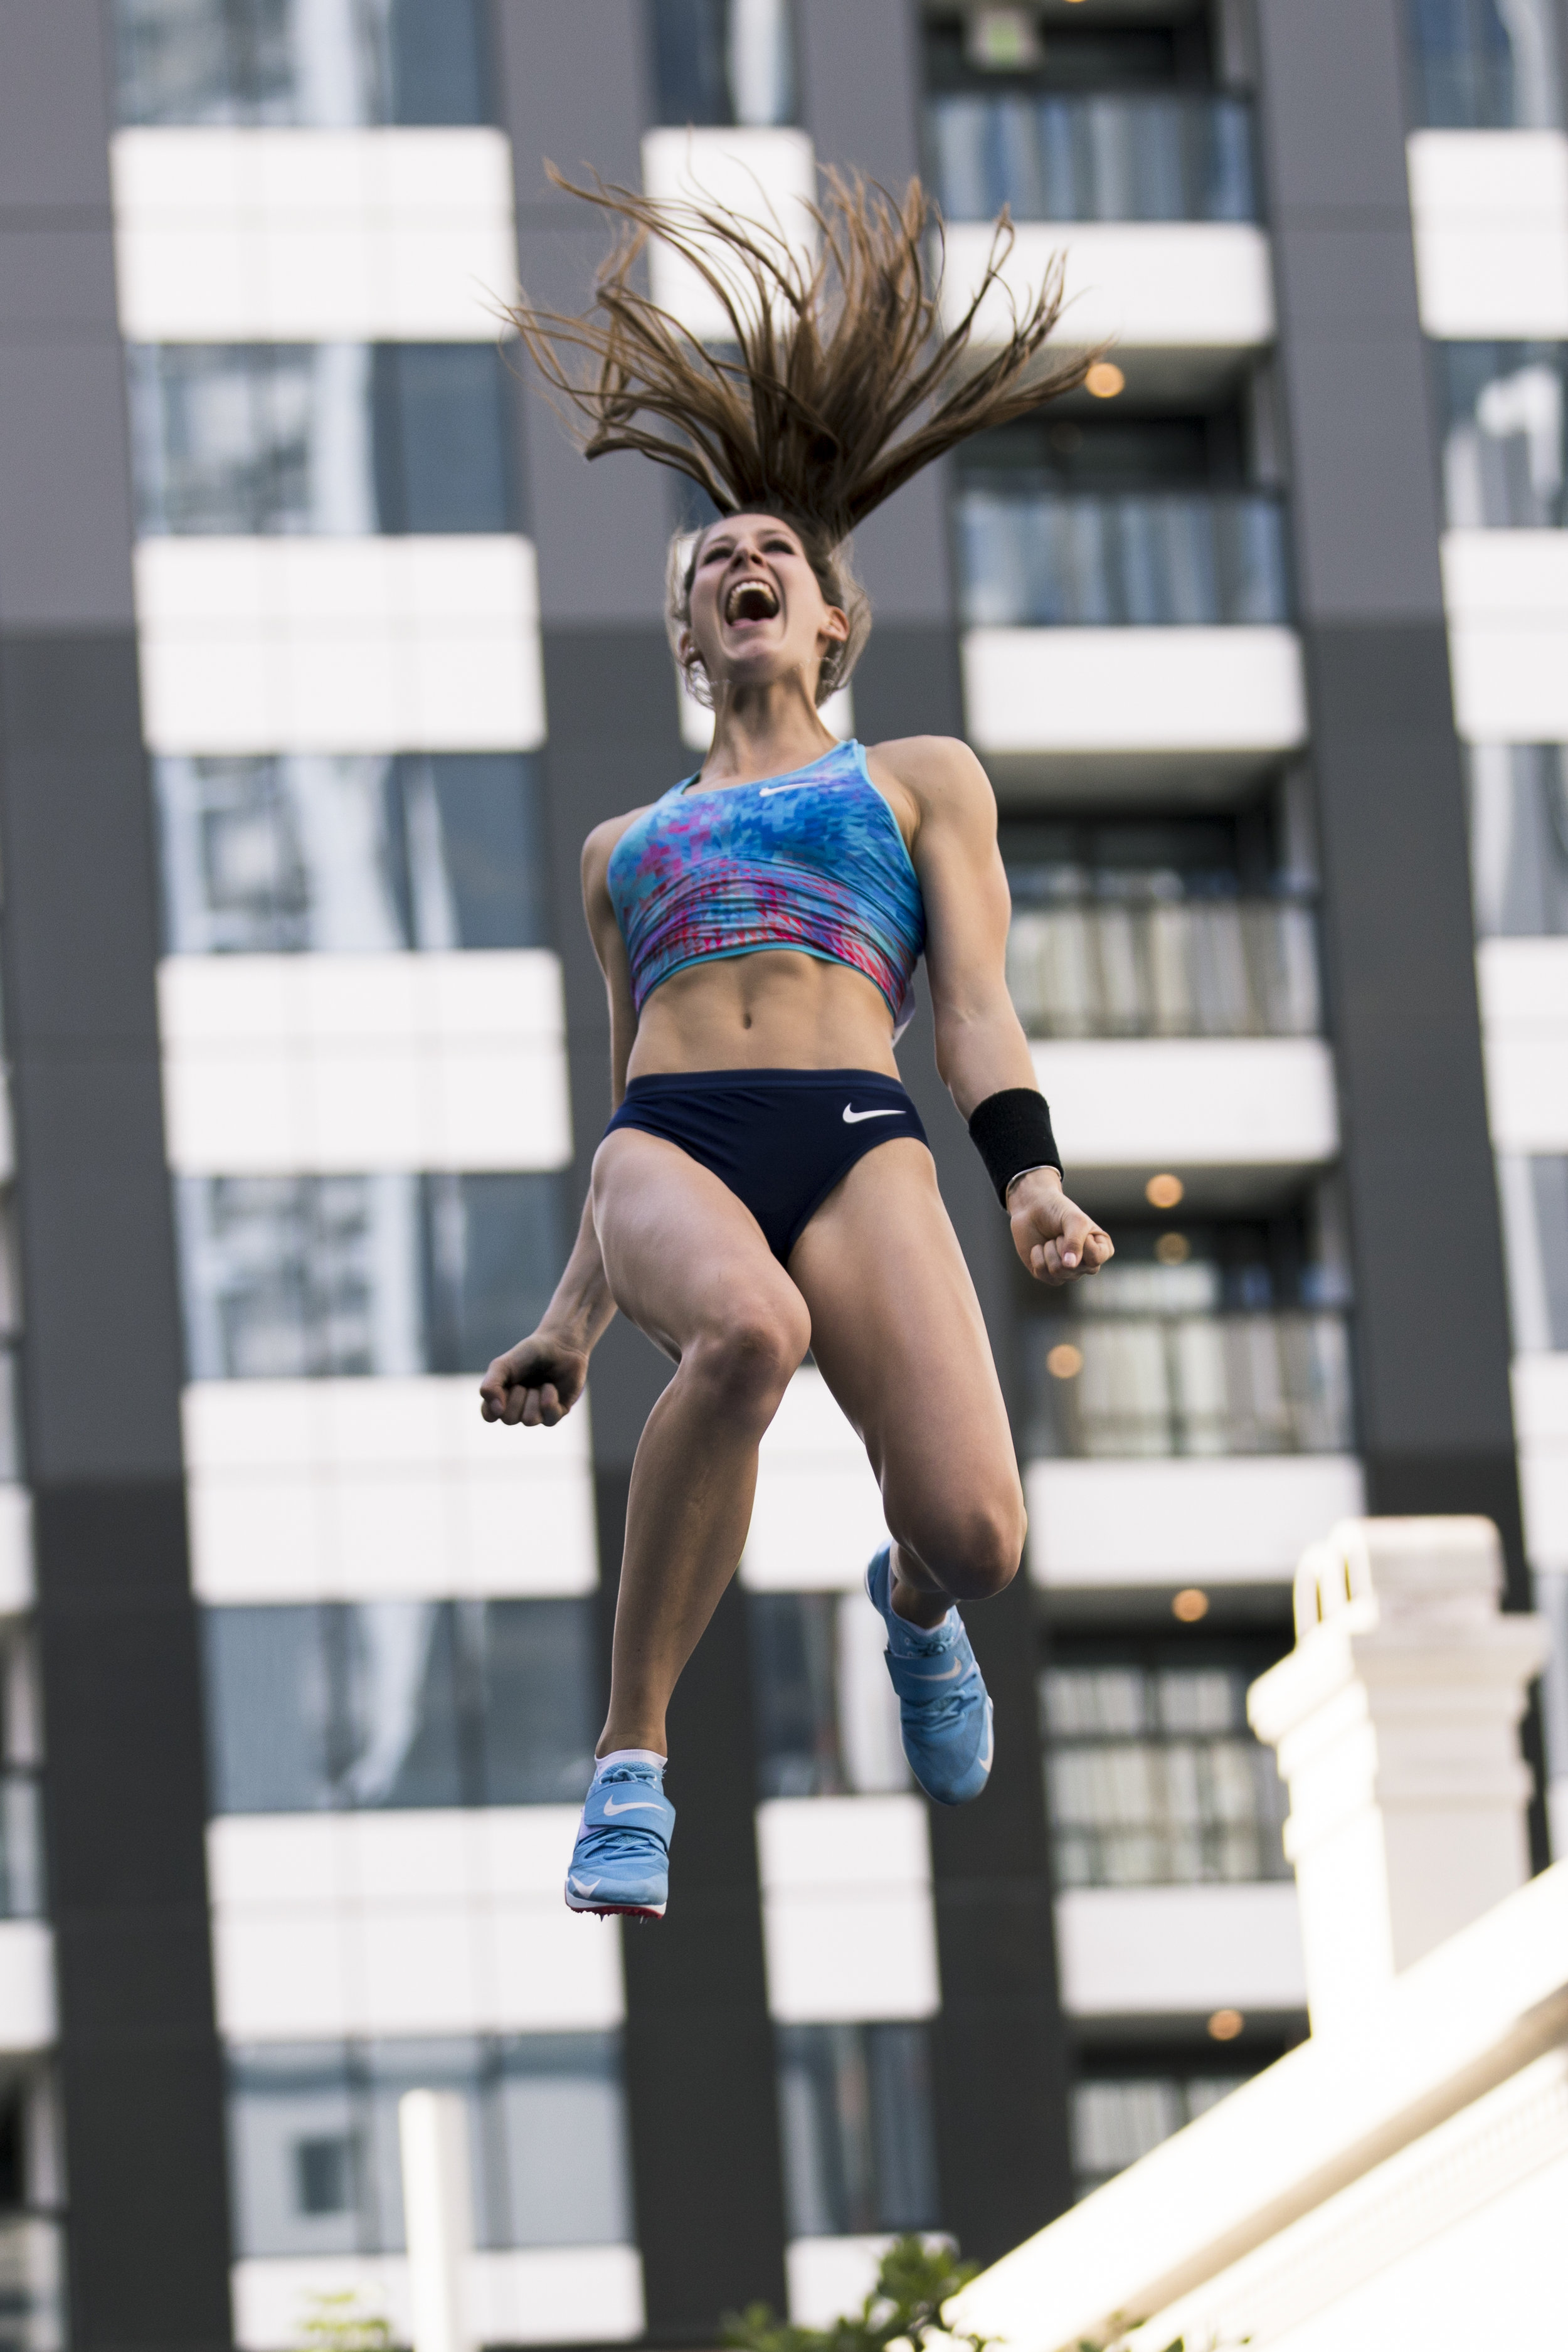 Eliza McCartney clears an exhibition personal best of 4.90m at the SKYCITY Vertical Pursuit Pole Vault Competition. Auckland, New Zealand. 18 March 2018. Copyright photo: Alisha Lovrich / www.photosport.nz